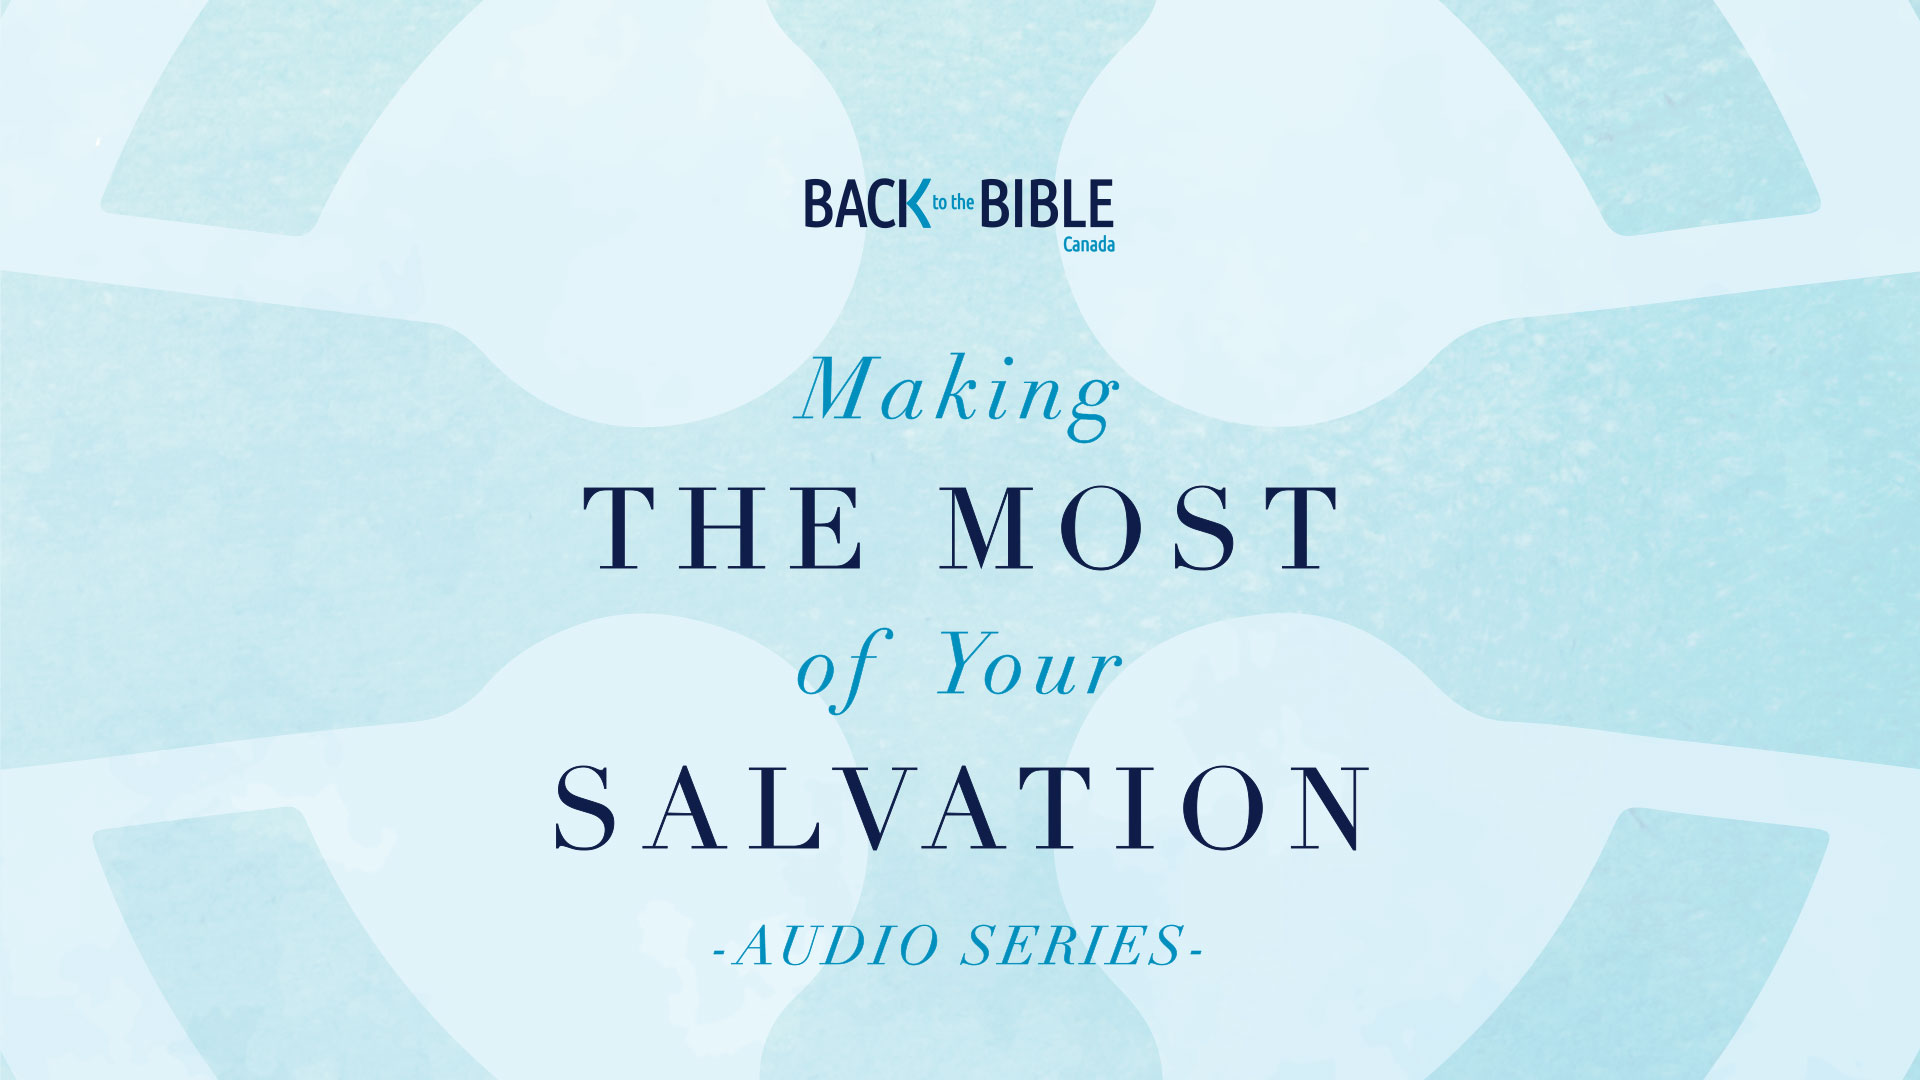 Making the Most of Your Salvation | Back to the Bible Canada